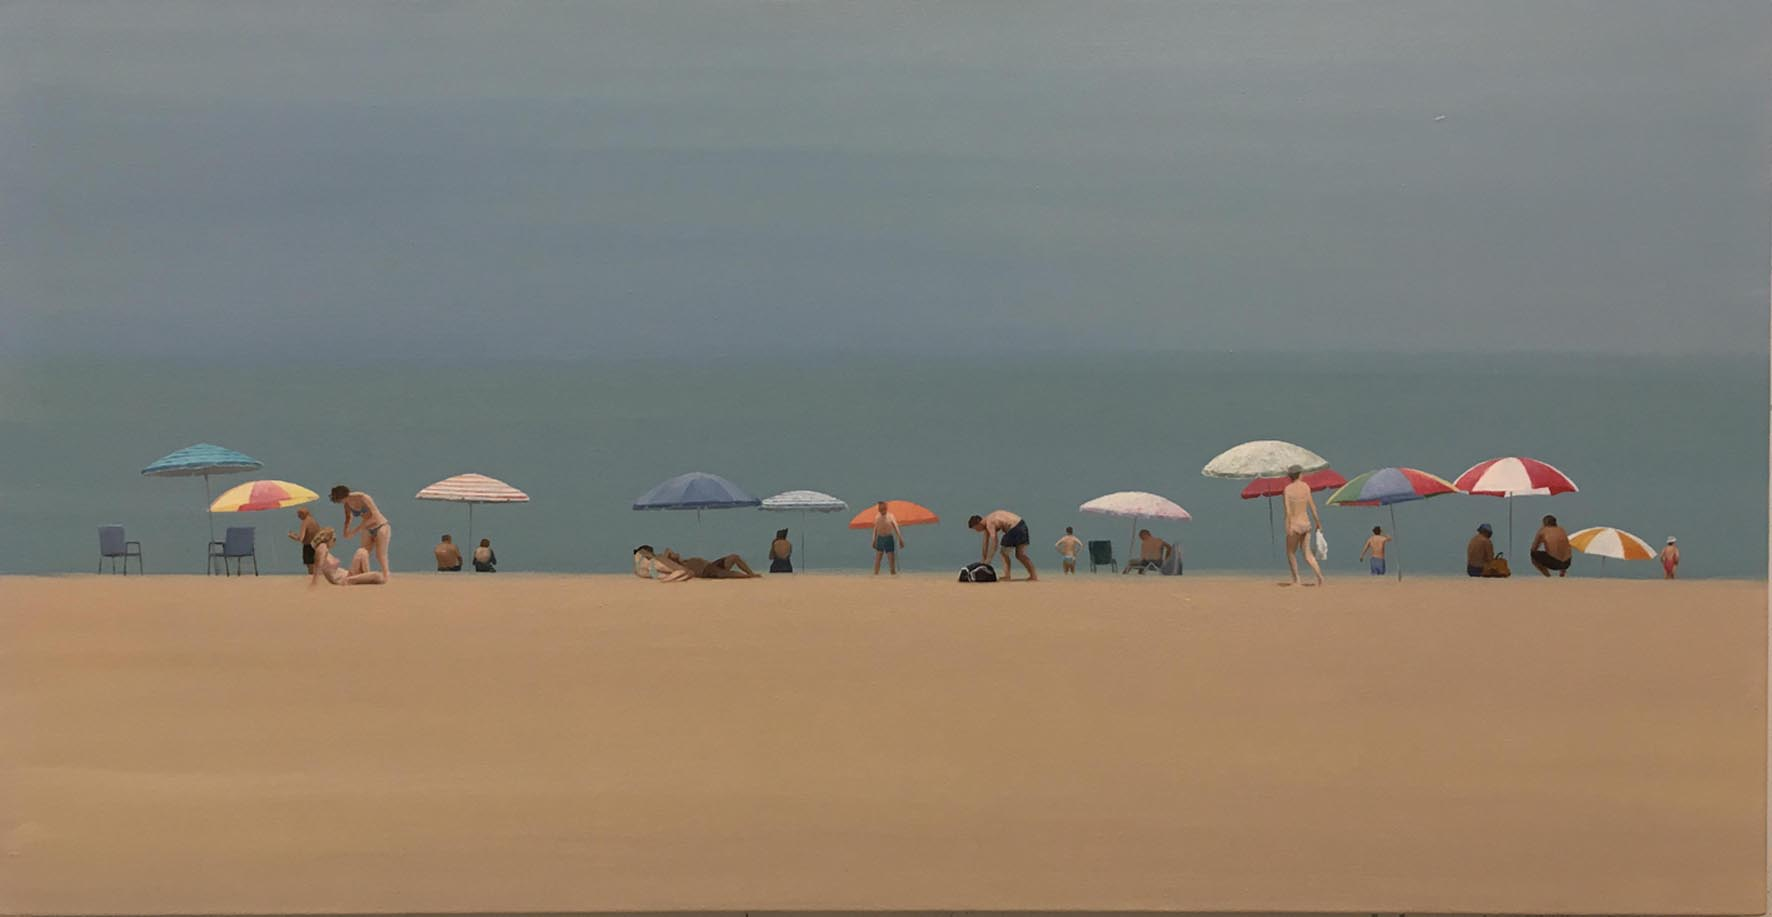 Beach 35 - Oil on canvas - 61x117cm - David Edmond